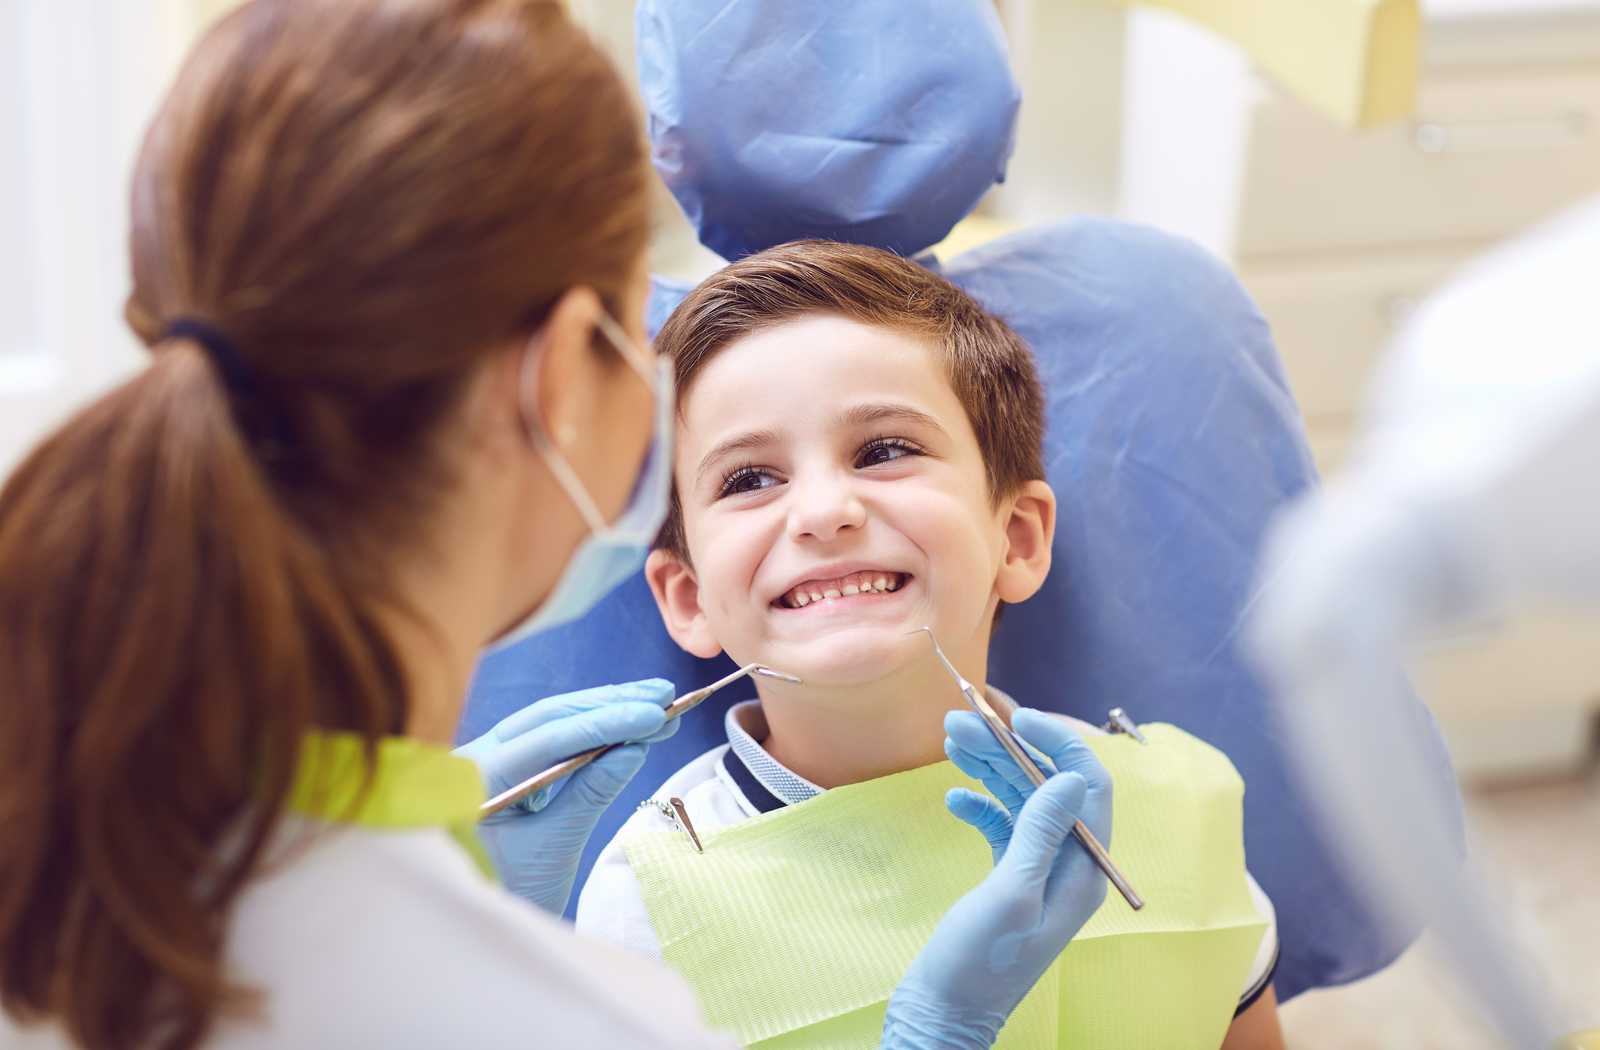 smiling child on blue chair learning to enjoy dental cleanings with woman holding scaling tools